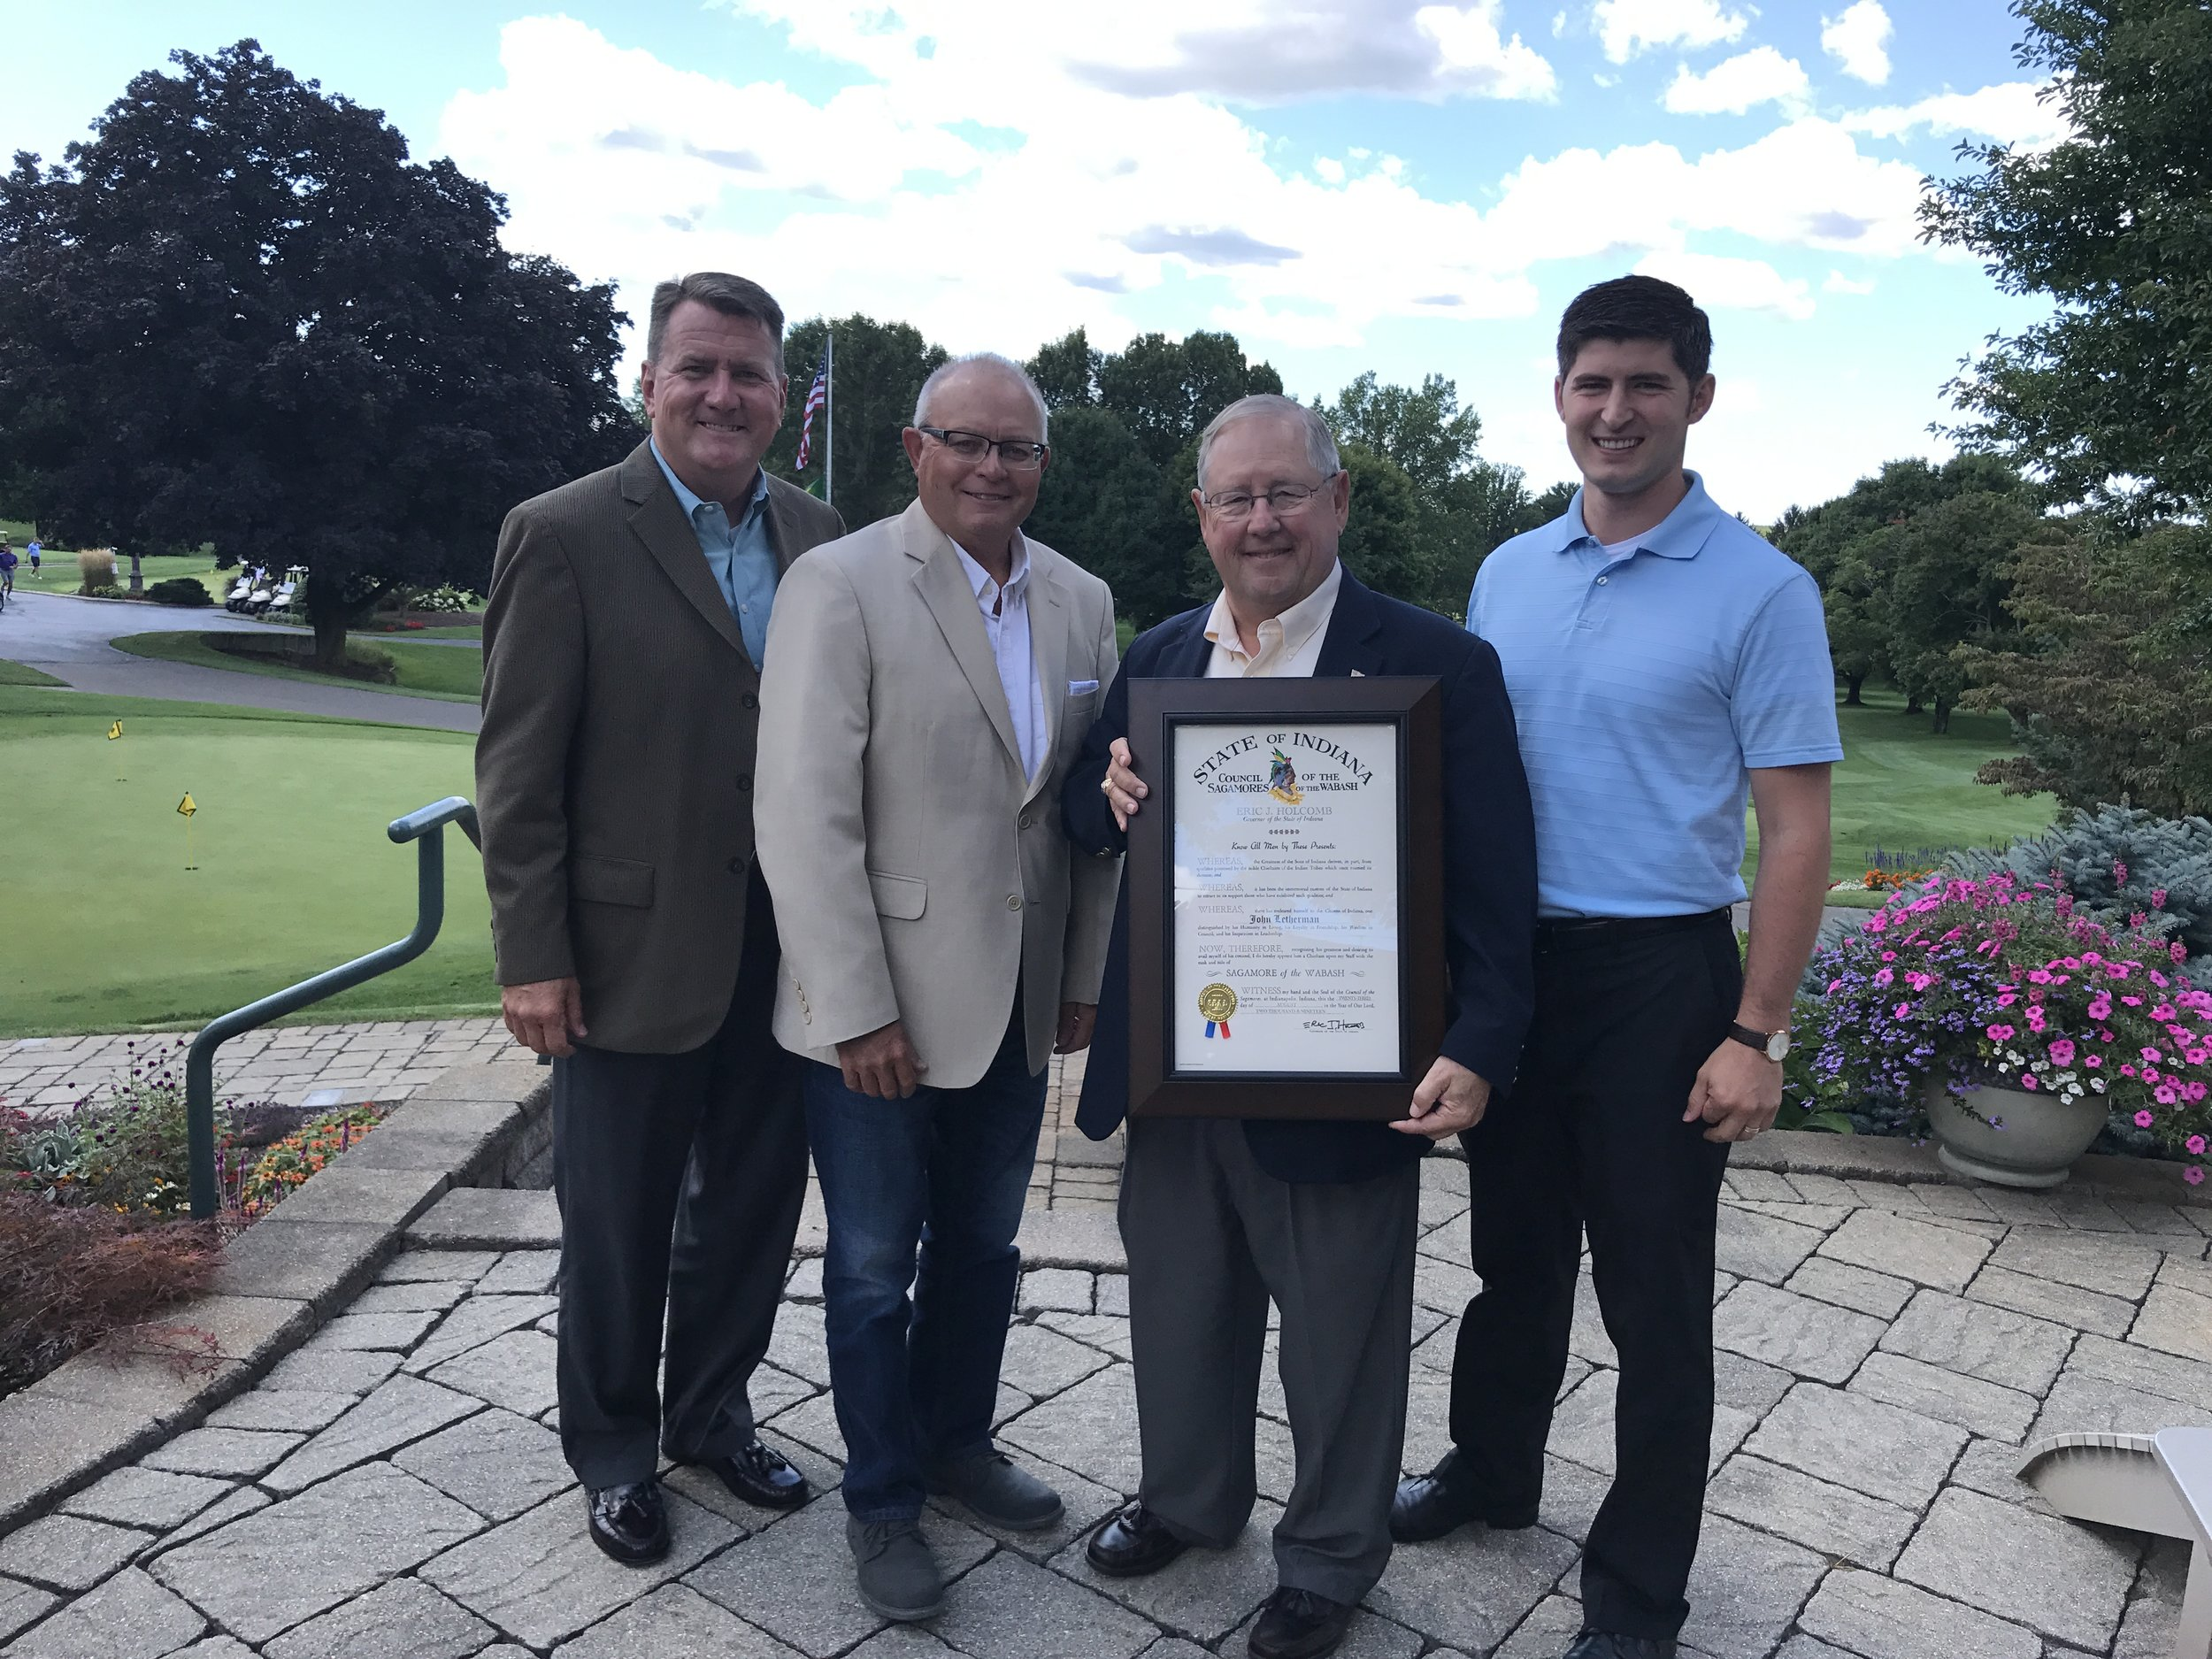 John Letherman receives The Sagamore of the Wabash Award. Pictured, from the left: Mark Dobson, State Representative Doug Miller, John Letherman and State Representative Timothy Wesco.